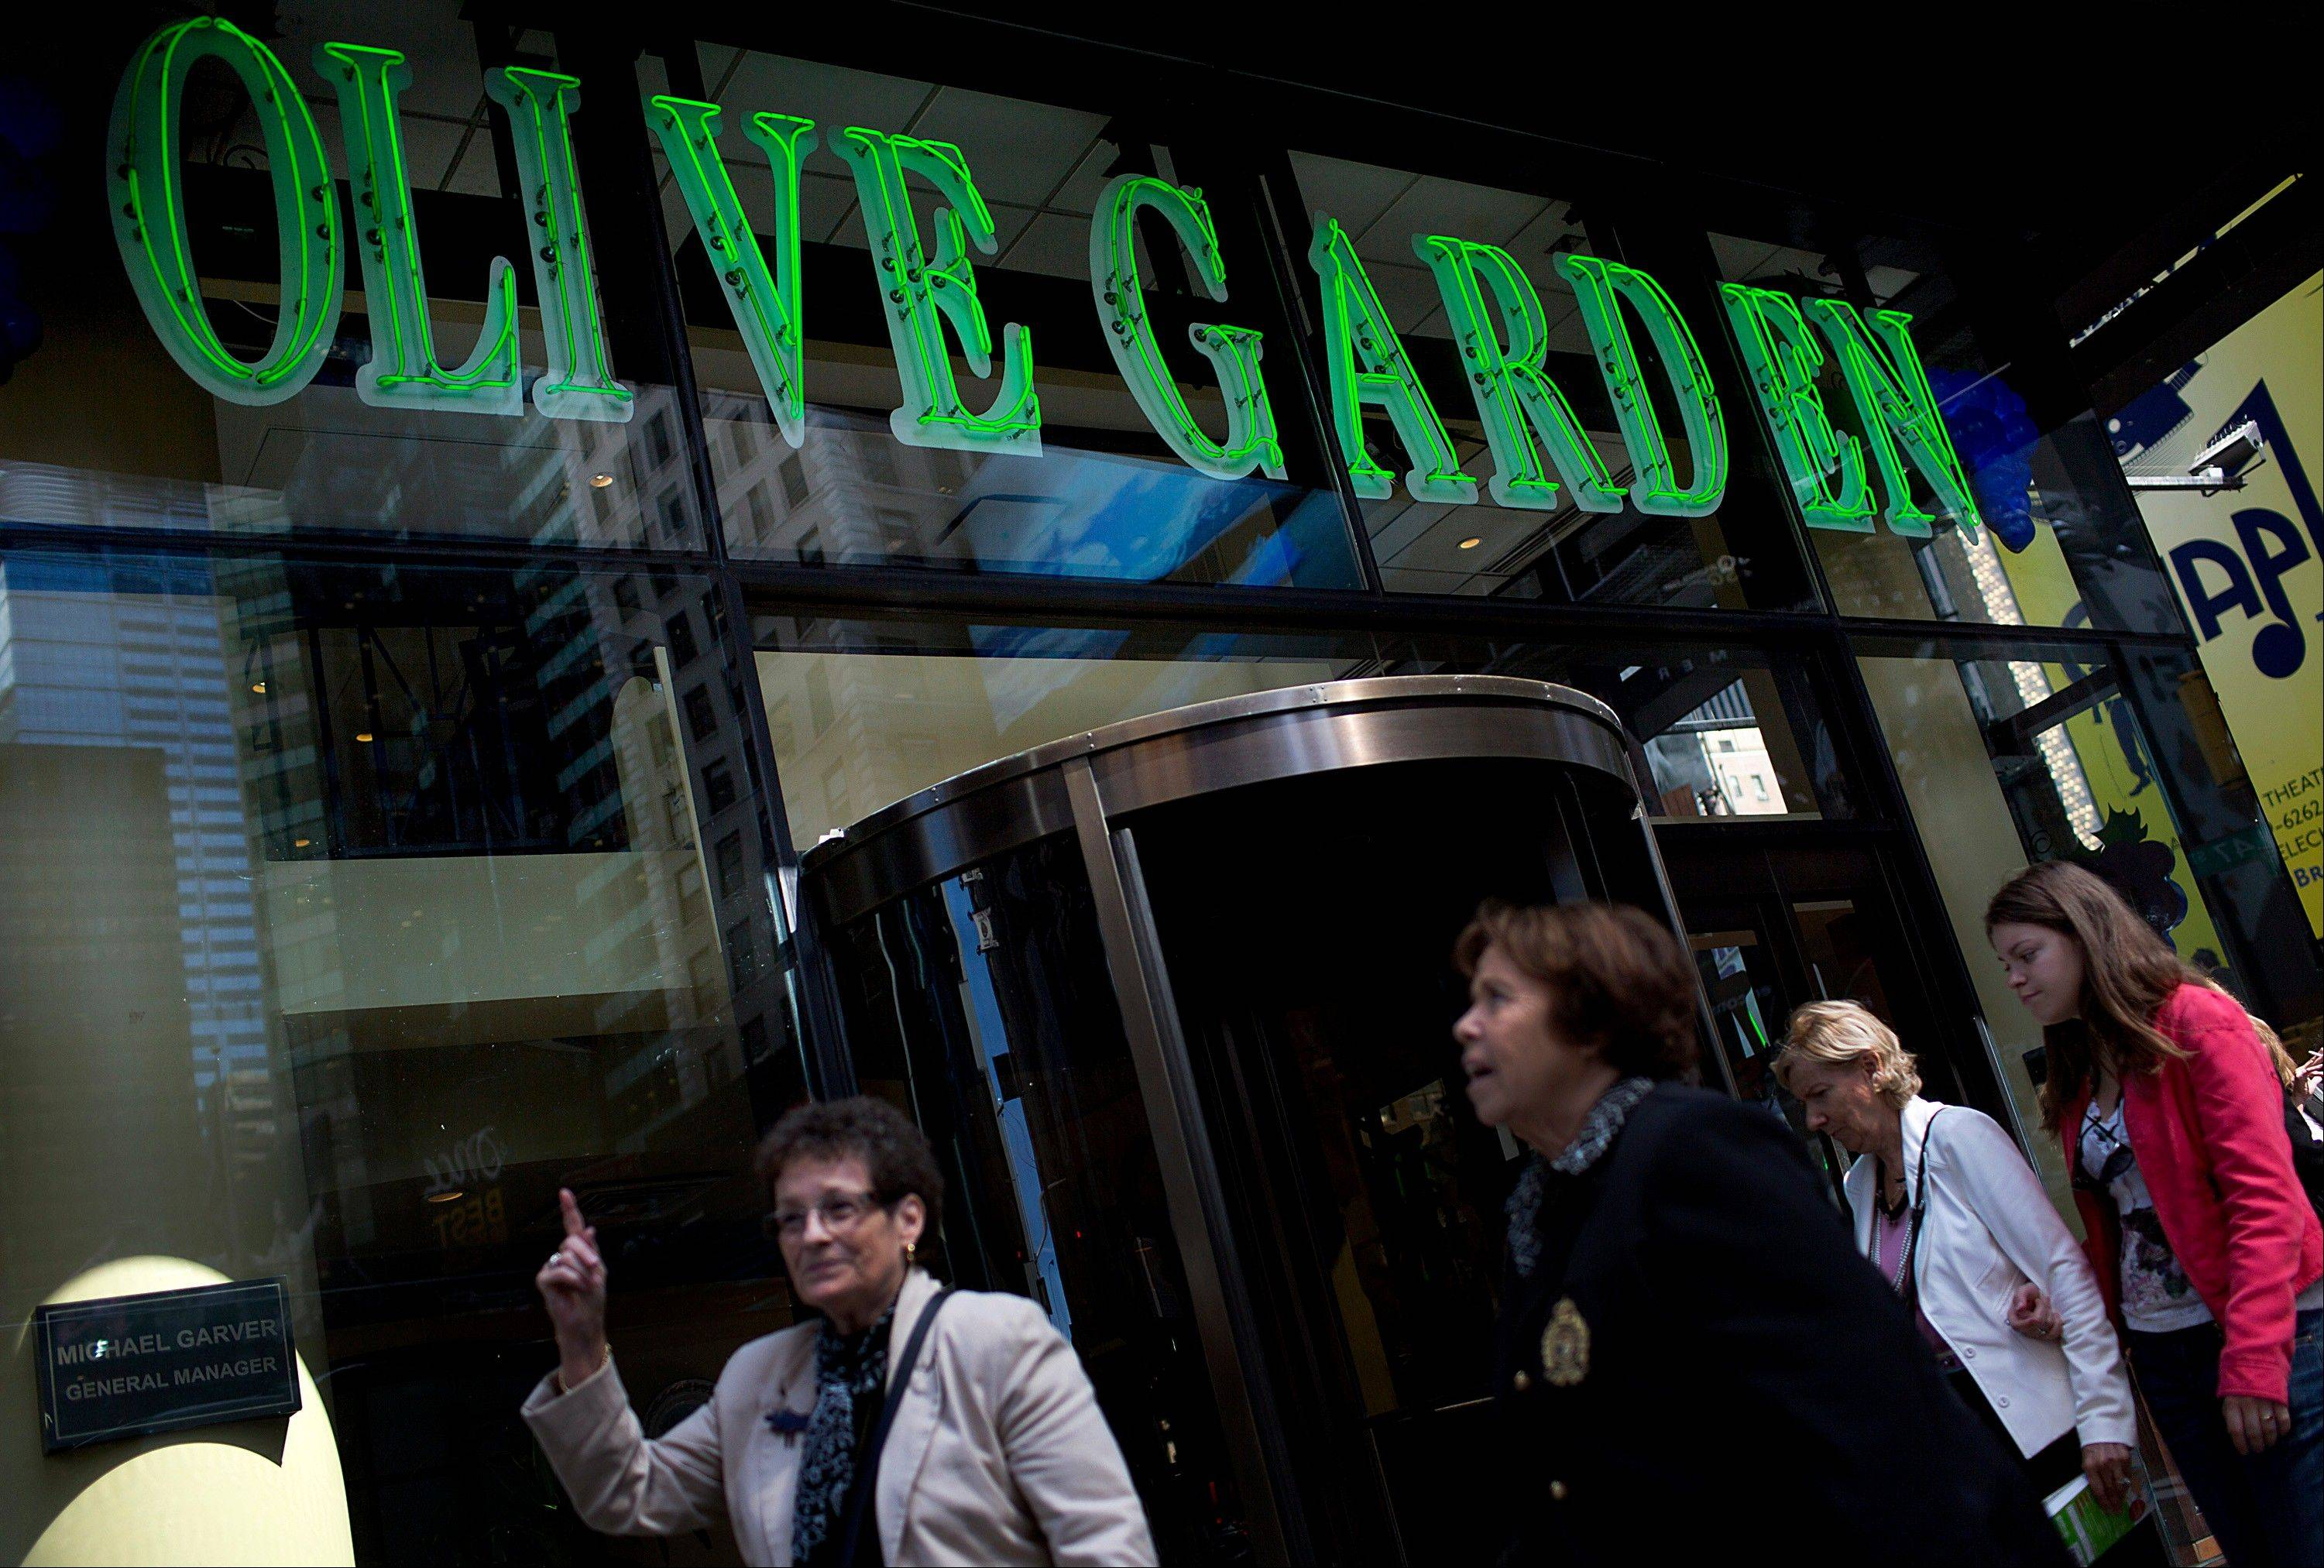 Pedestrians pass in front of an Olive Garden restaurant in New York, U.S., on Wednesday, Sept. 19, 2012. Darden Restaurants Inc., operators of casual dining restaurants in North America, is scheduled to release earnings data on Sept. 21.